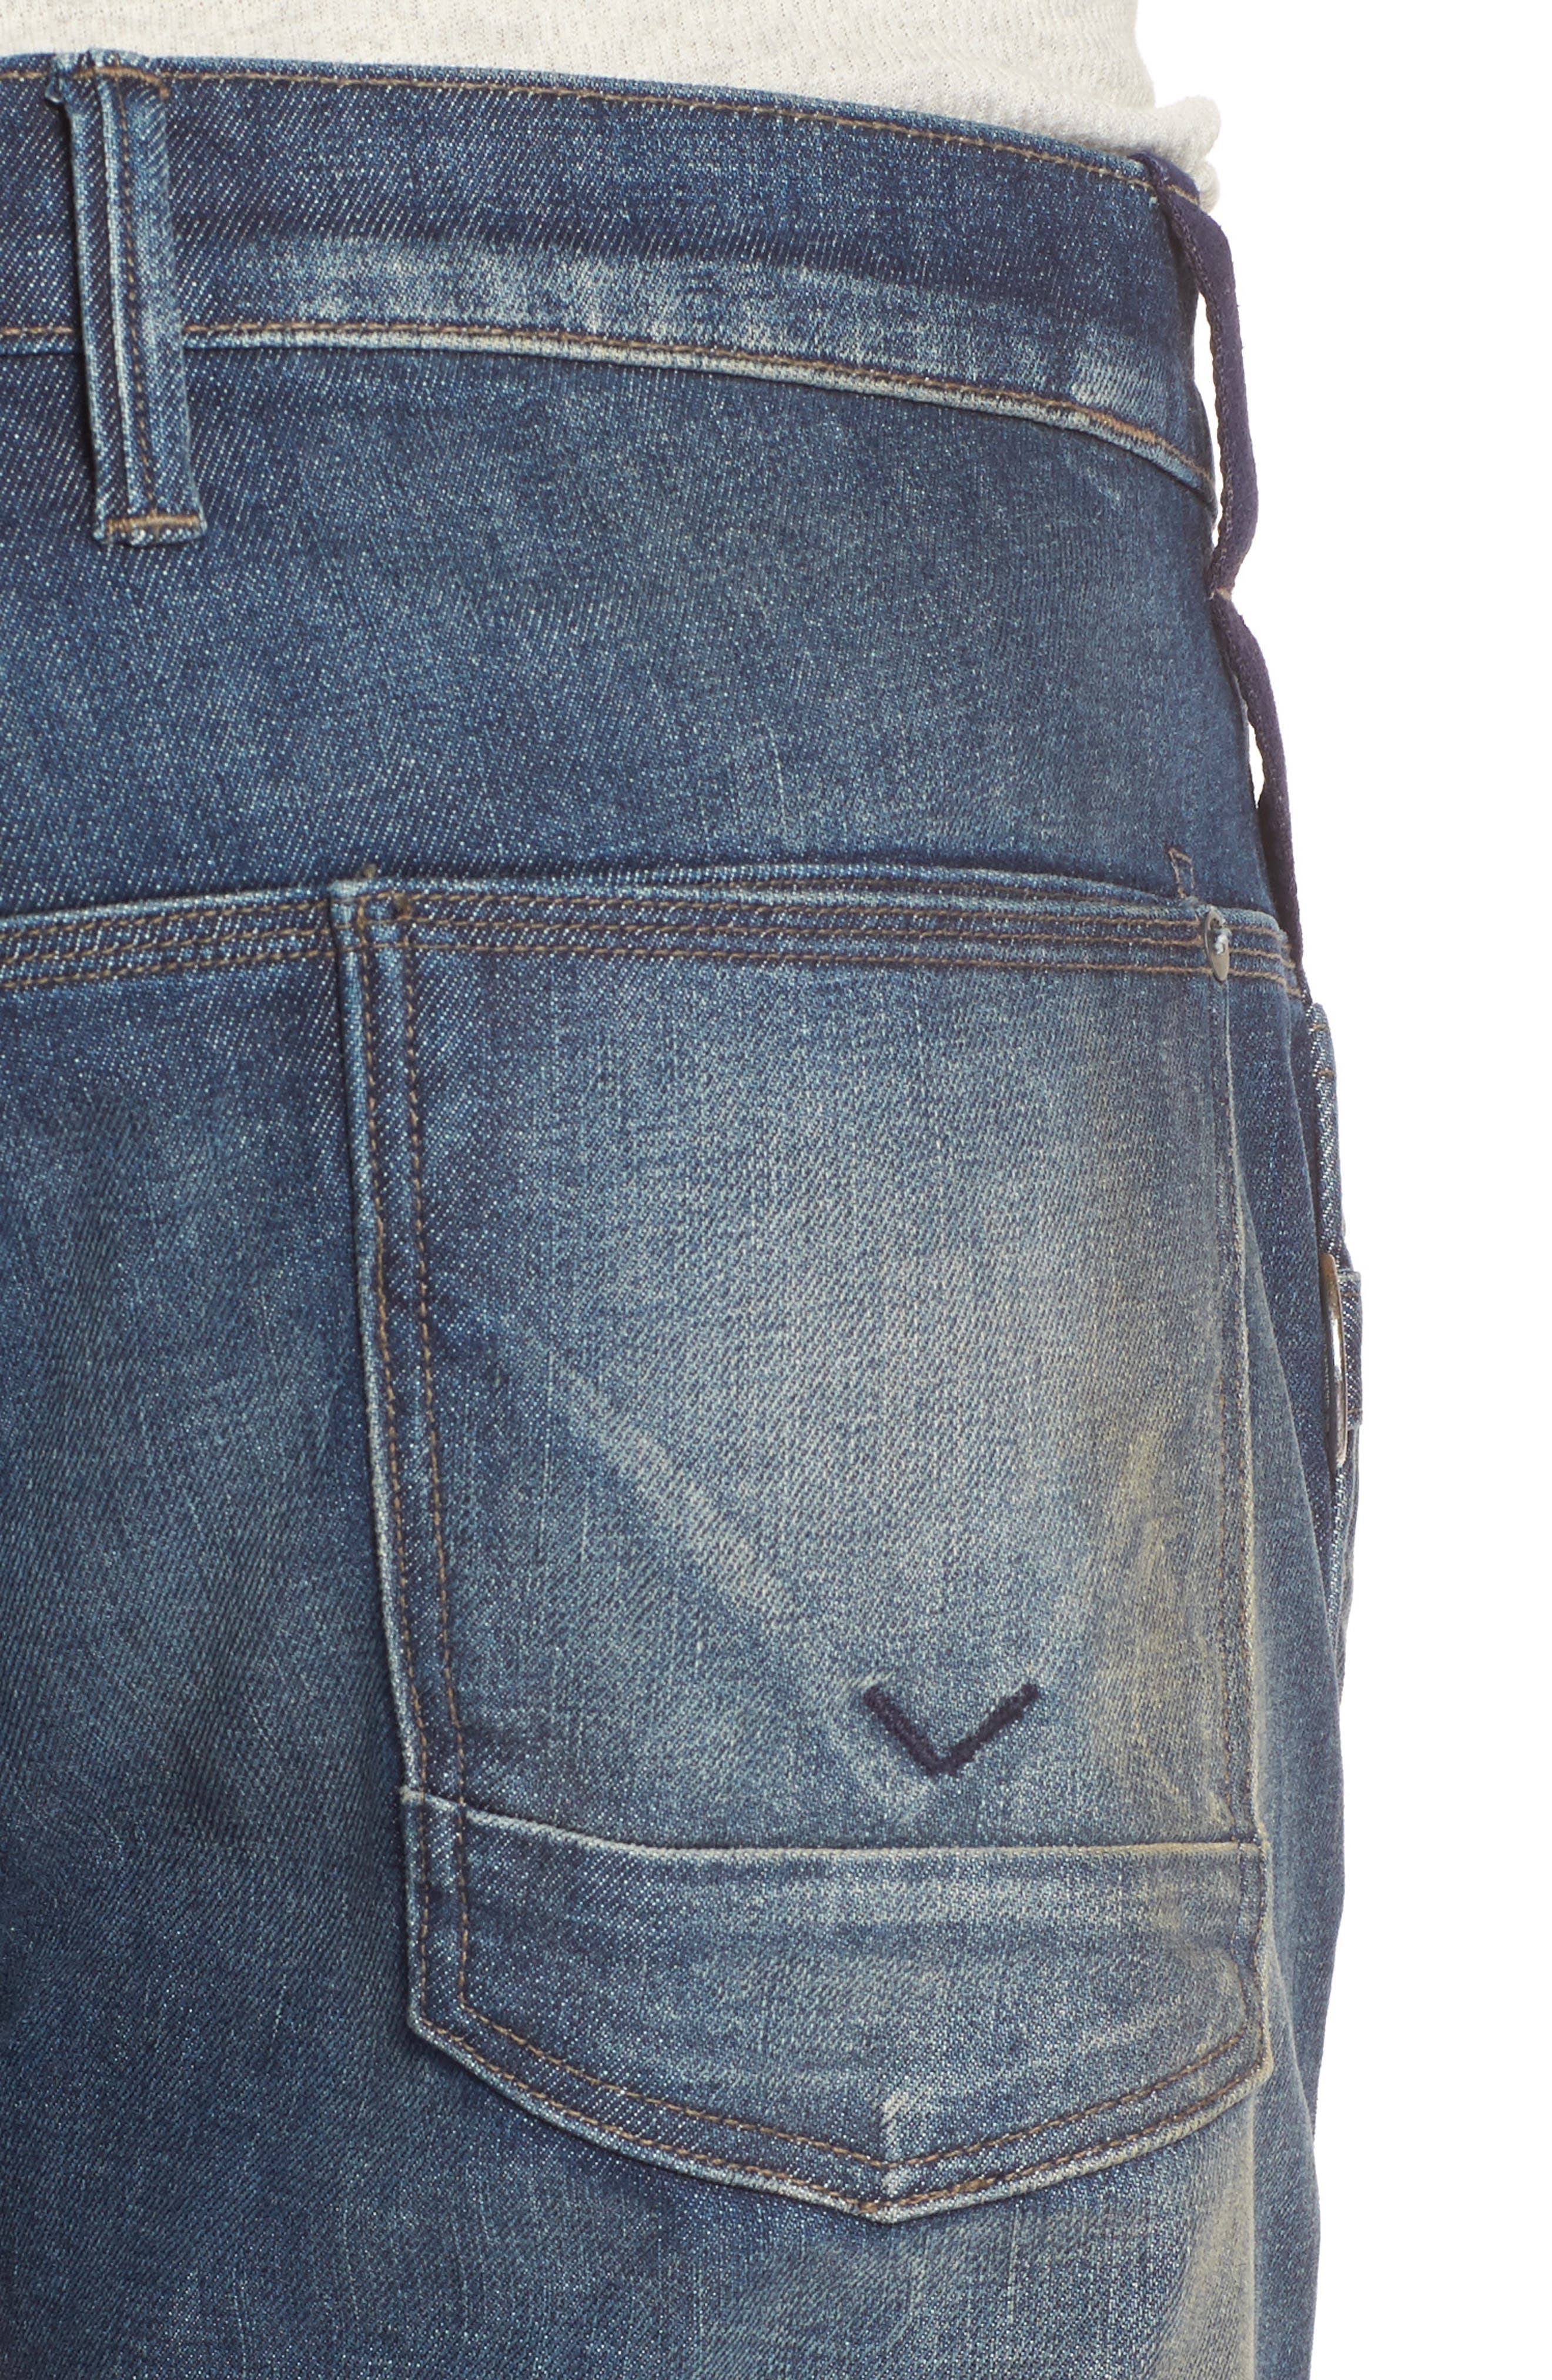 Hunter Straight Fit Jeans,                             Alternate thumbnail 4, color,                             422